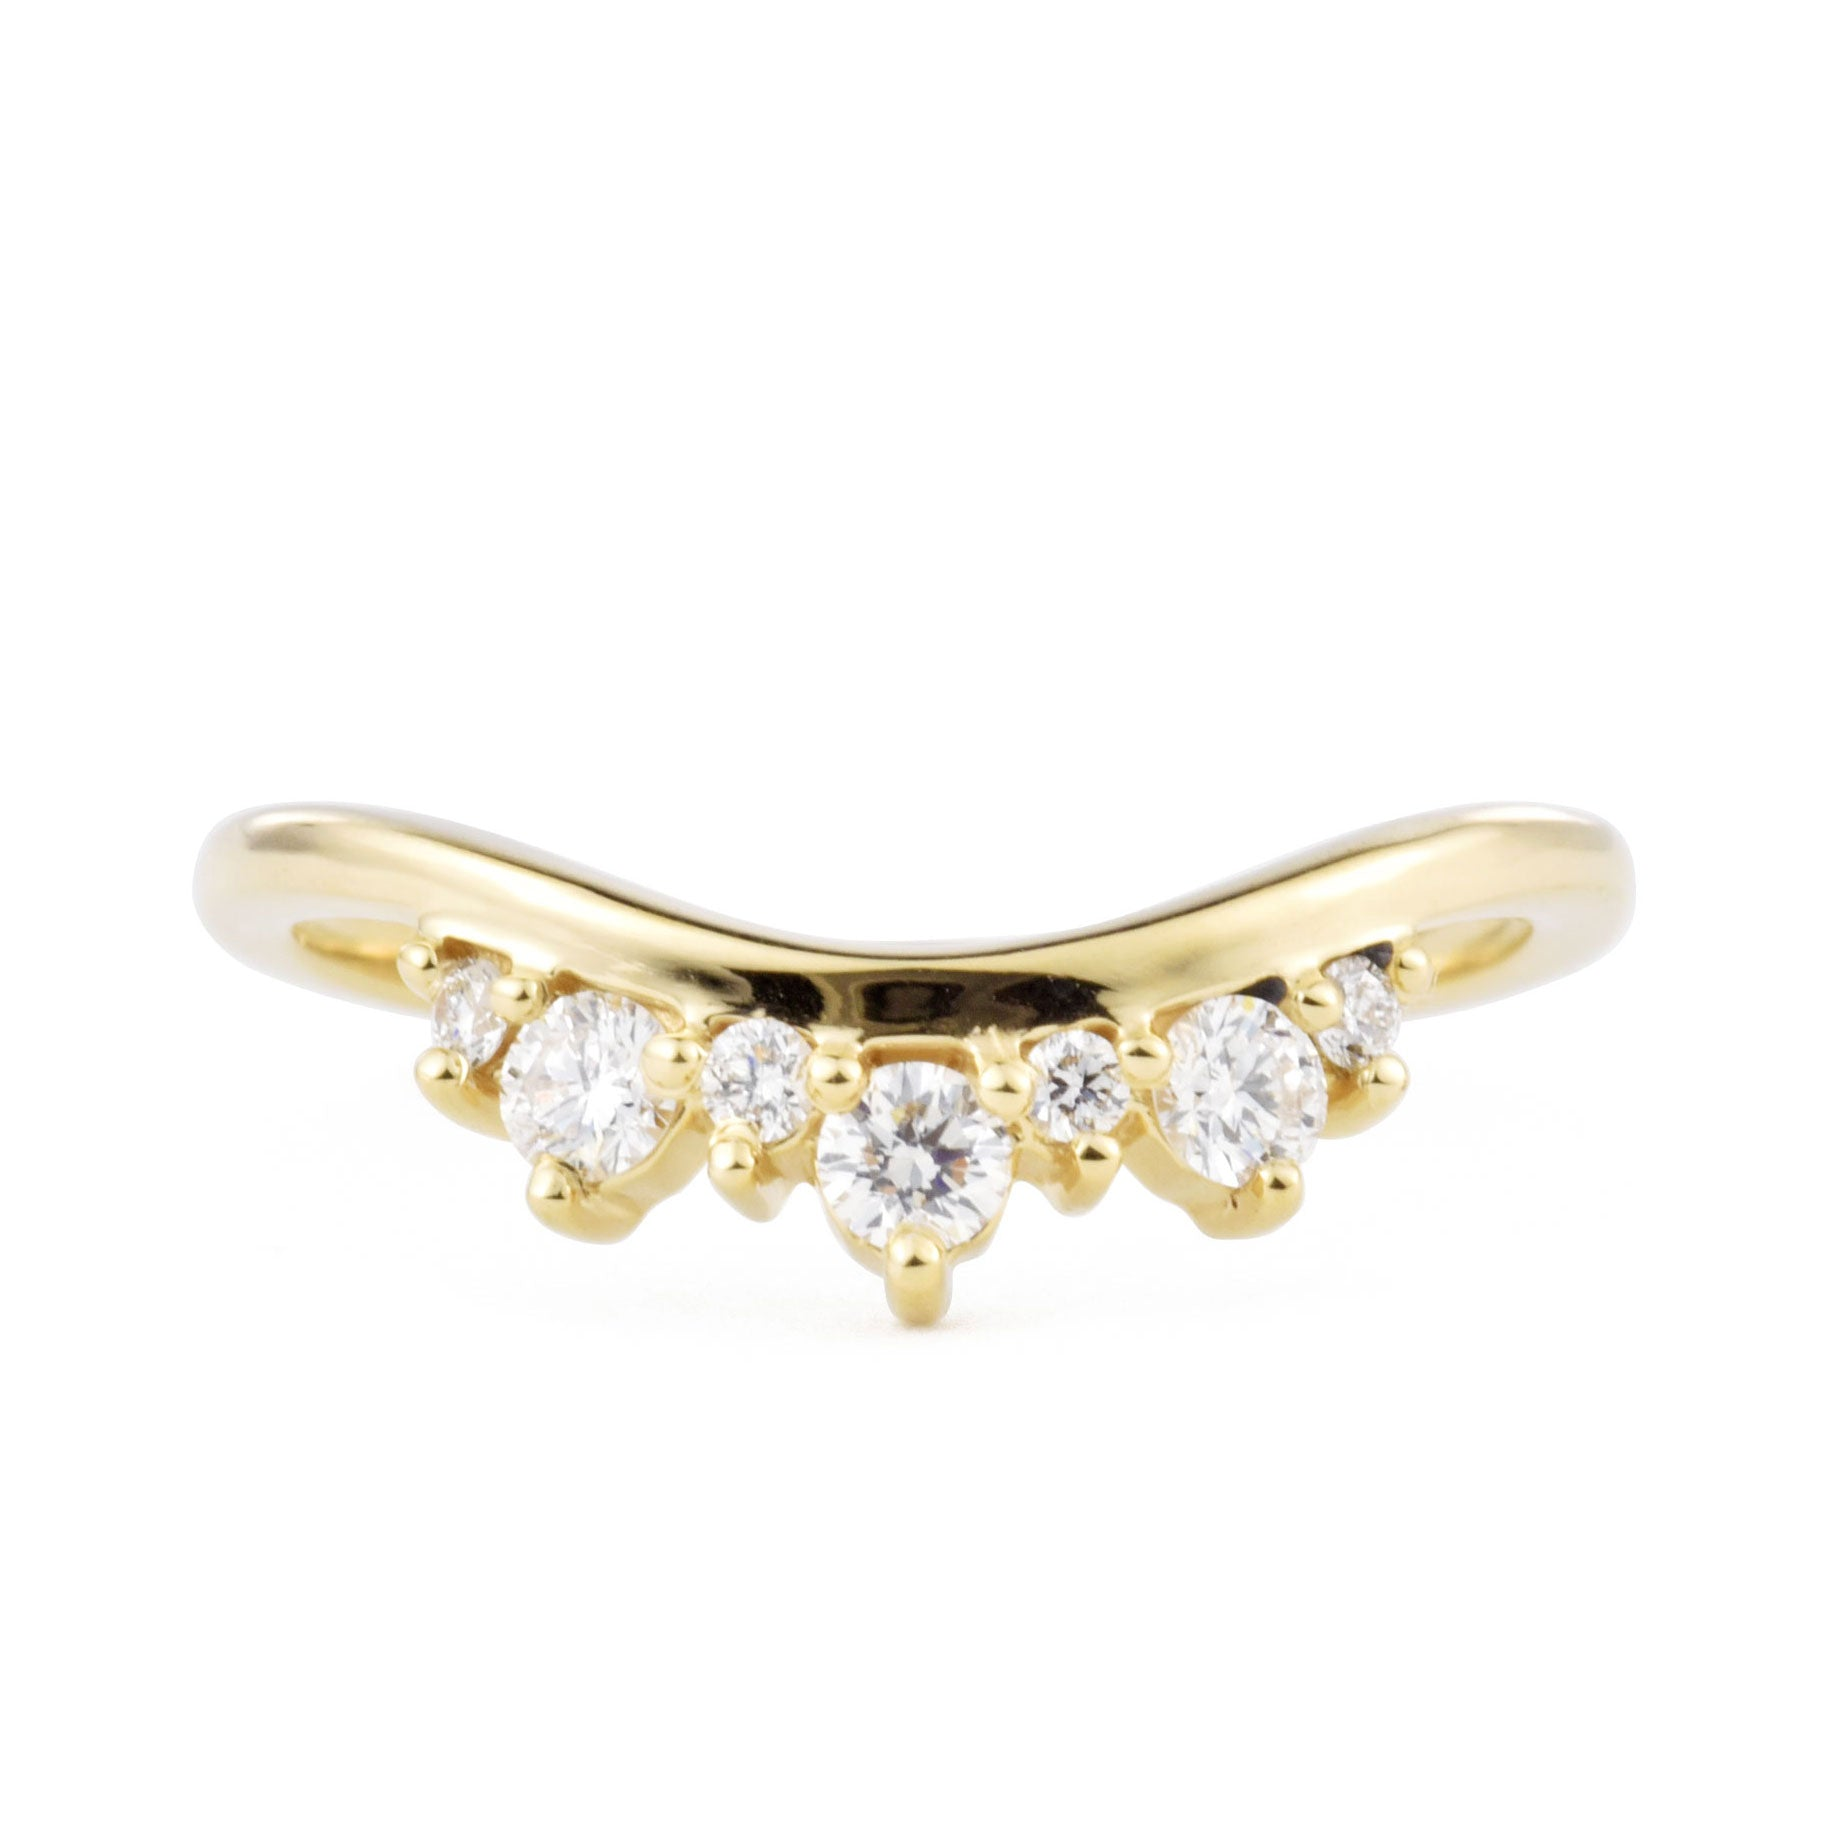 Tiara Diamond Wave Band shown from the front in yellow gold